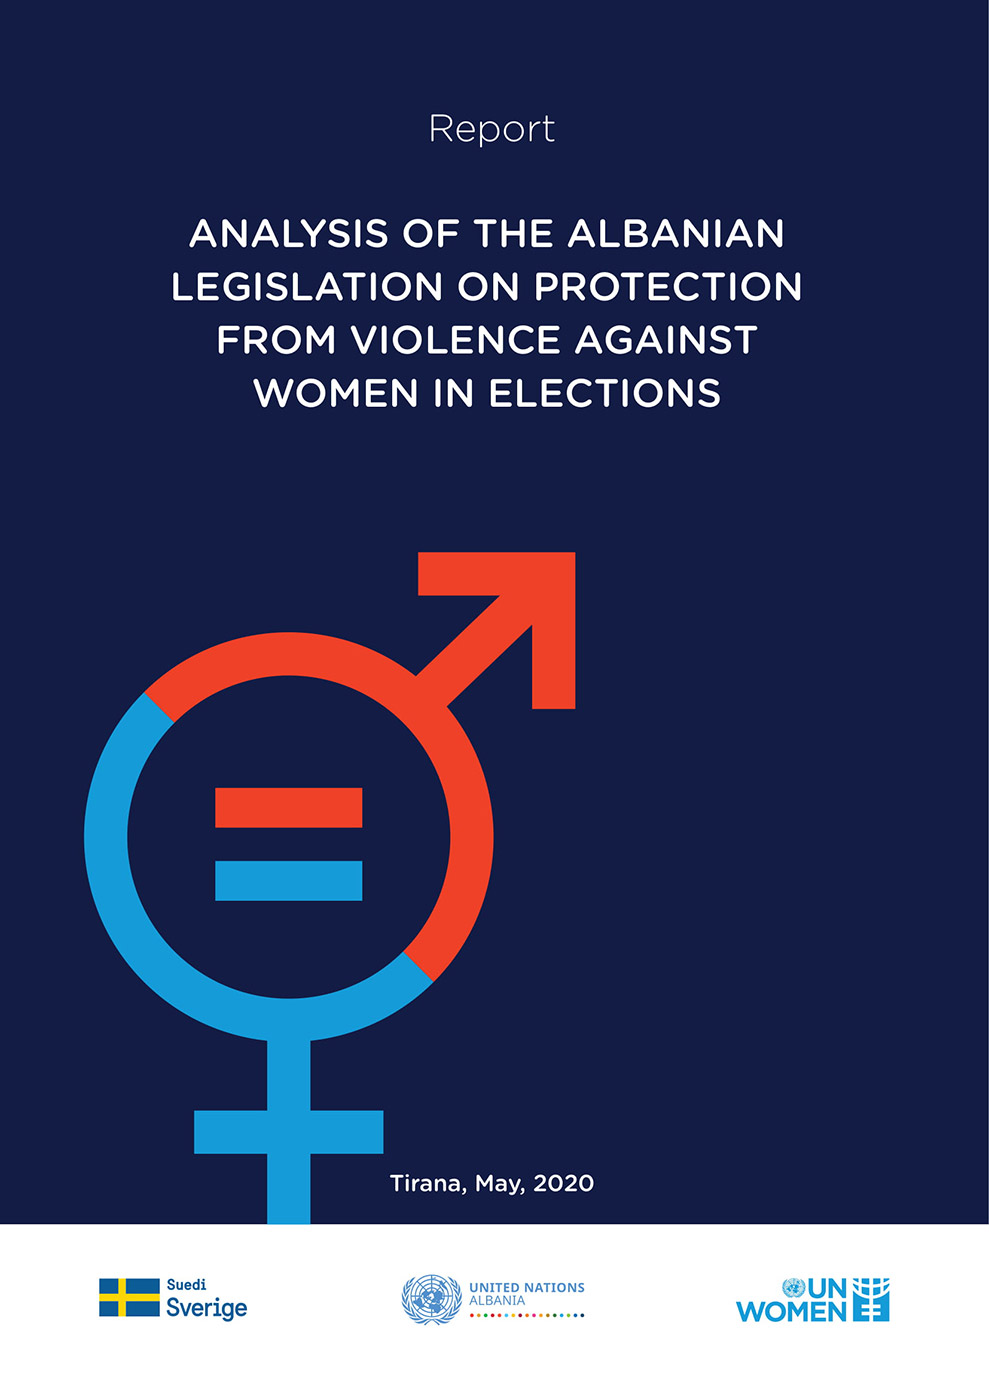 Analysis of the Albanian legislation on protection from violence against women in elections